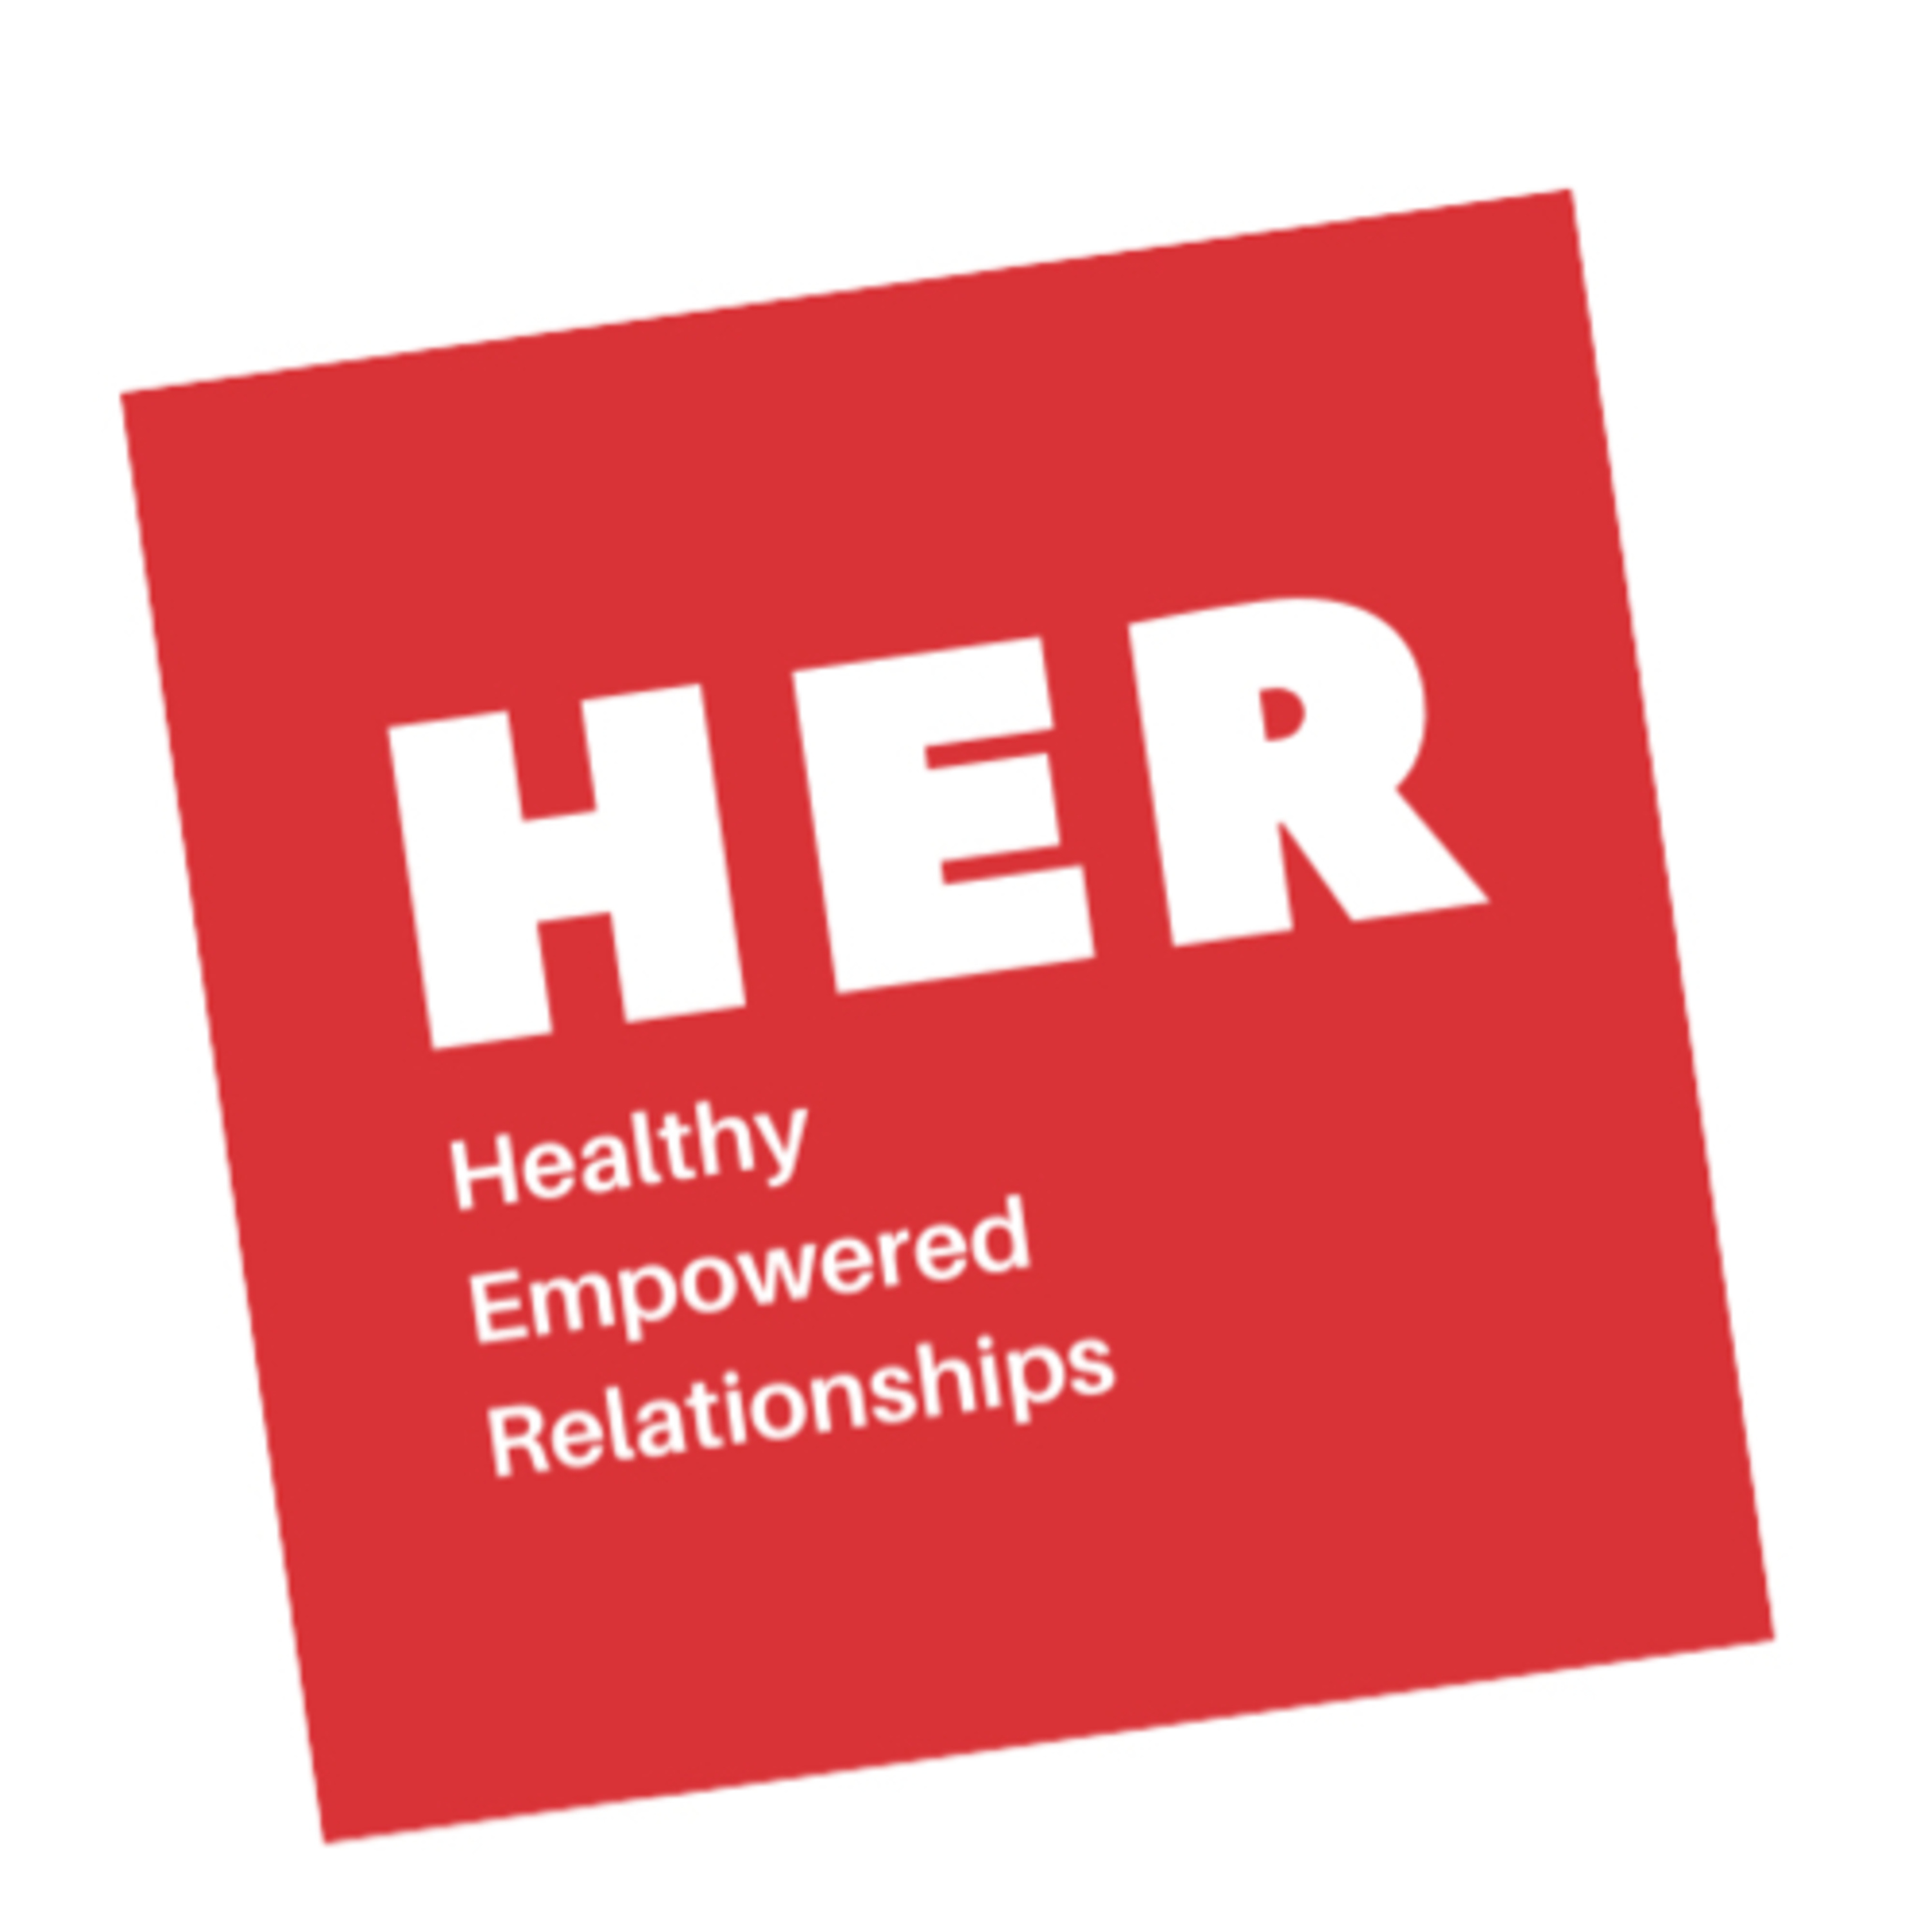 HER - Healthy Empowered Relationships | Listen Free on Castbox